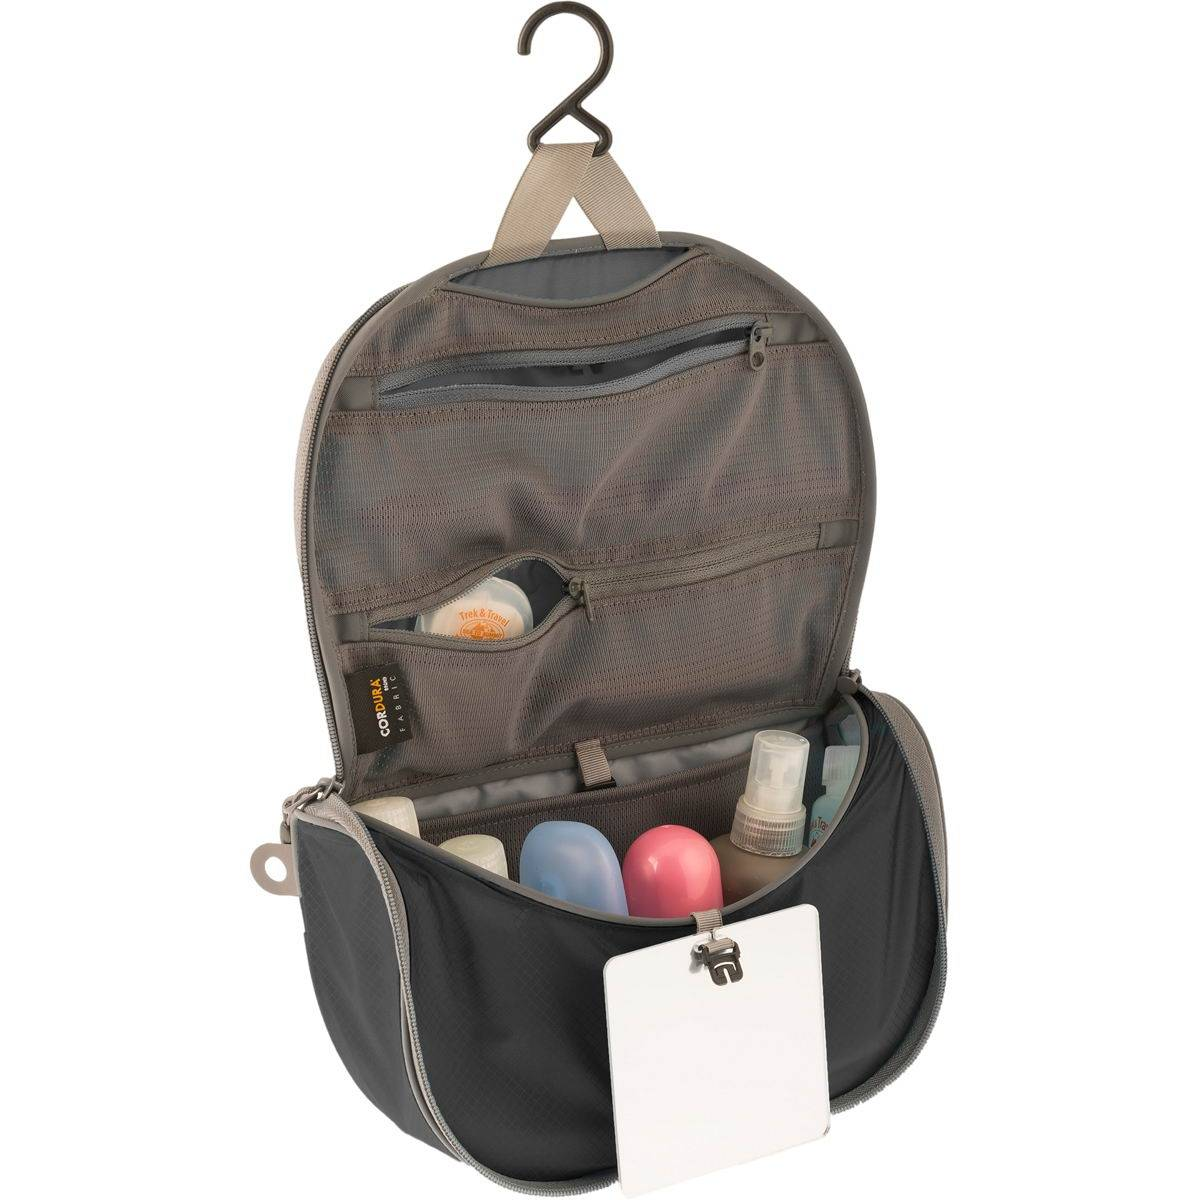 Sea to Summit TravellingLight Hanging Toiletry Bag L black-grey - Bild 2